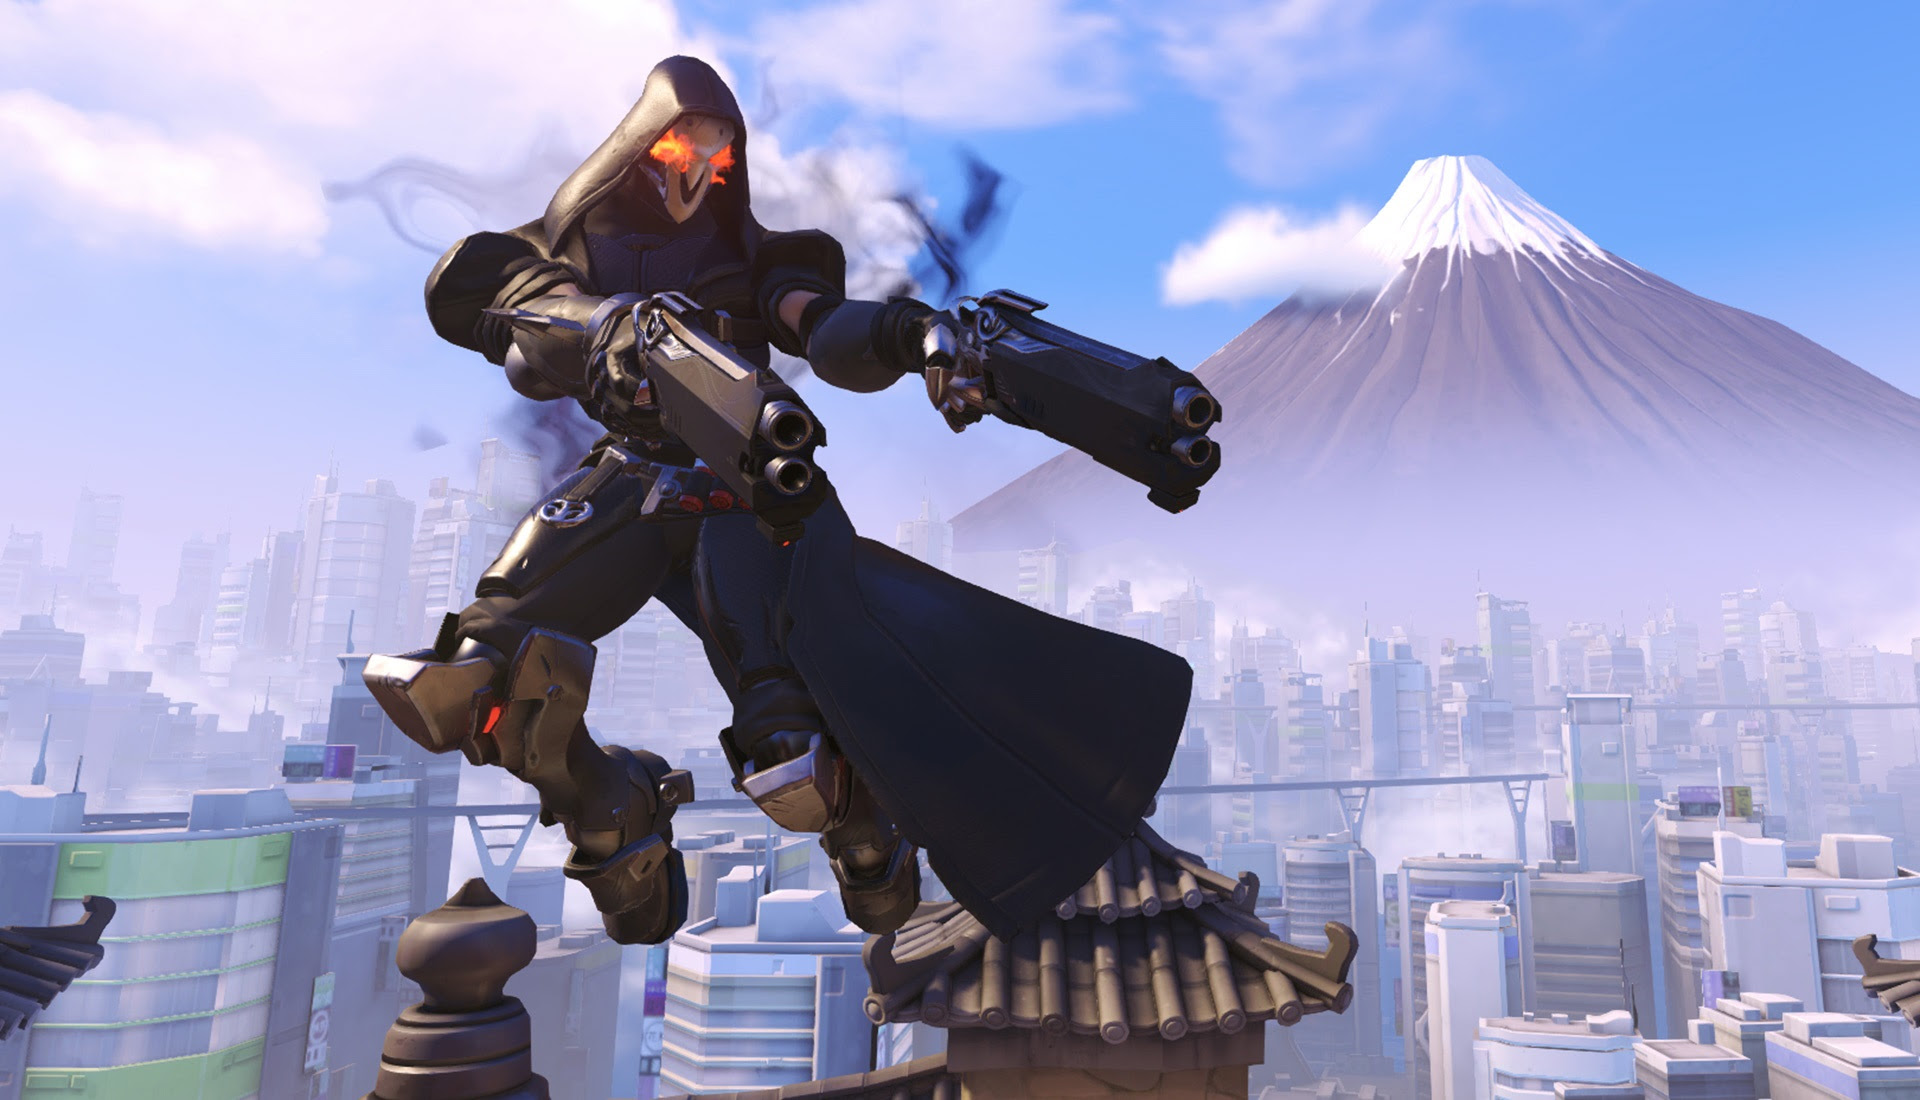 Overwatch is getting free-for-all and team deathmatch screenshot